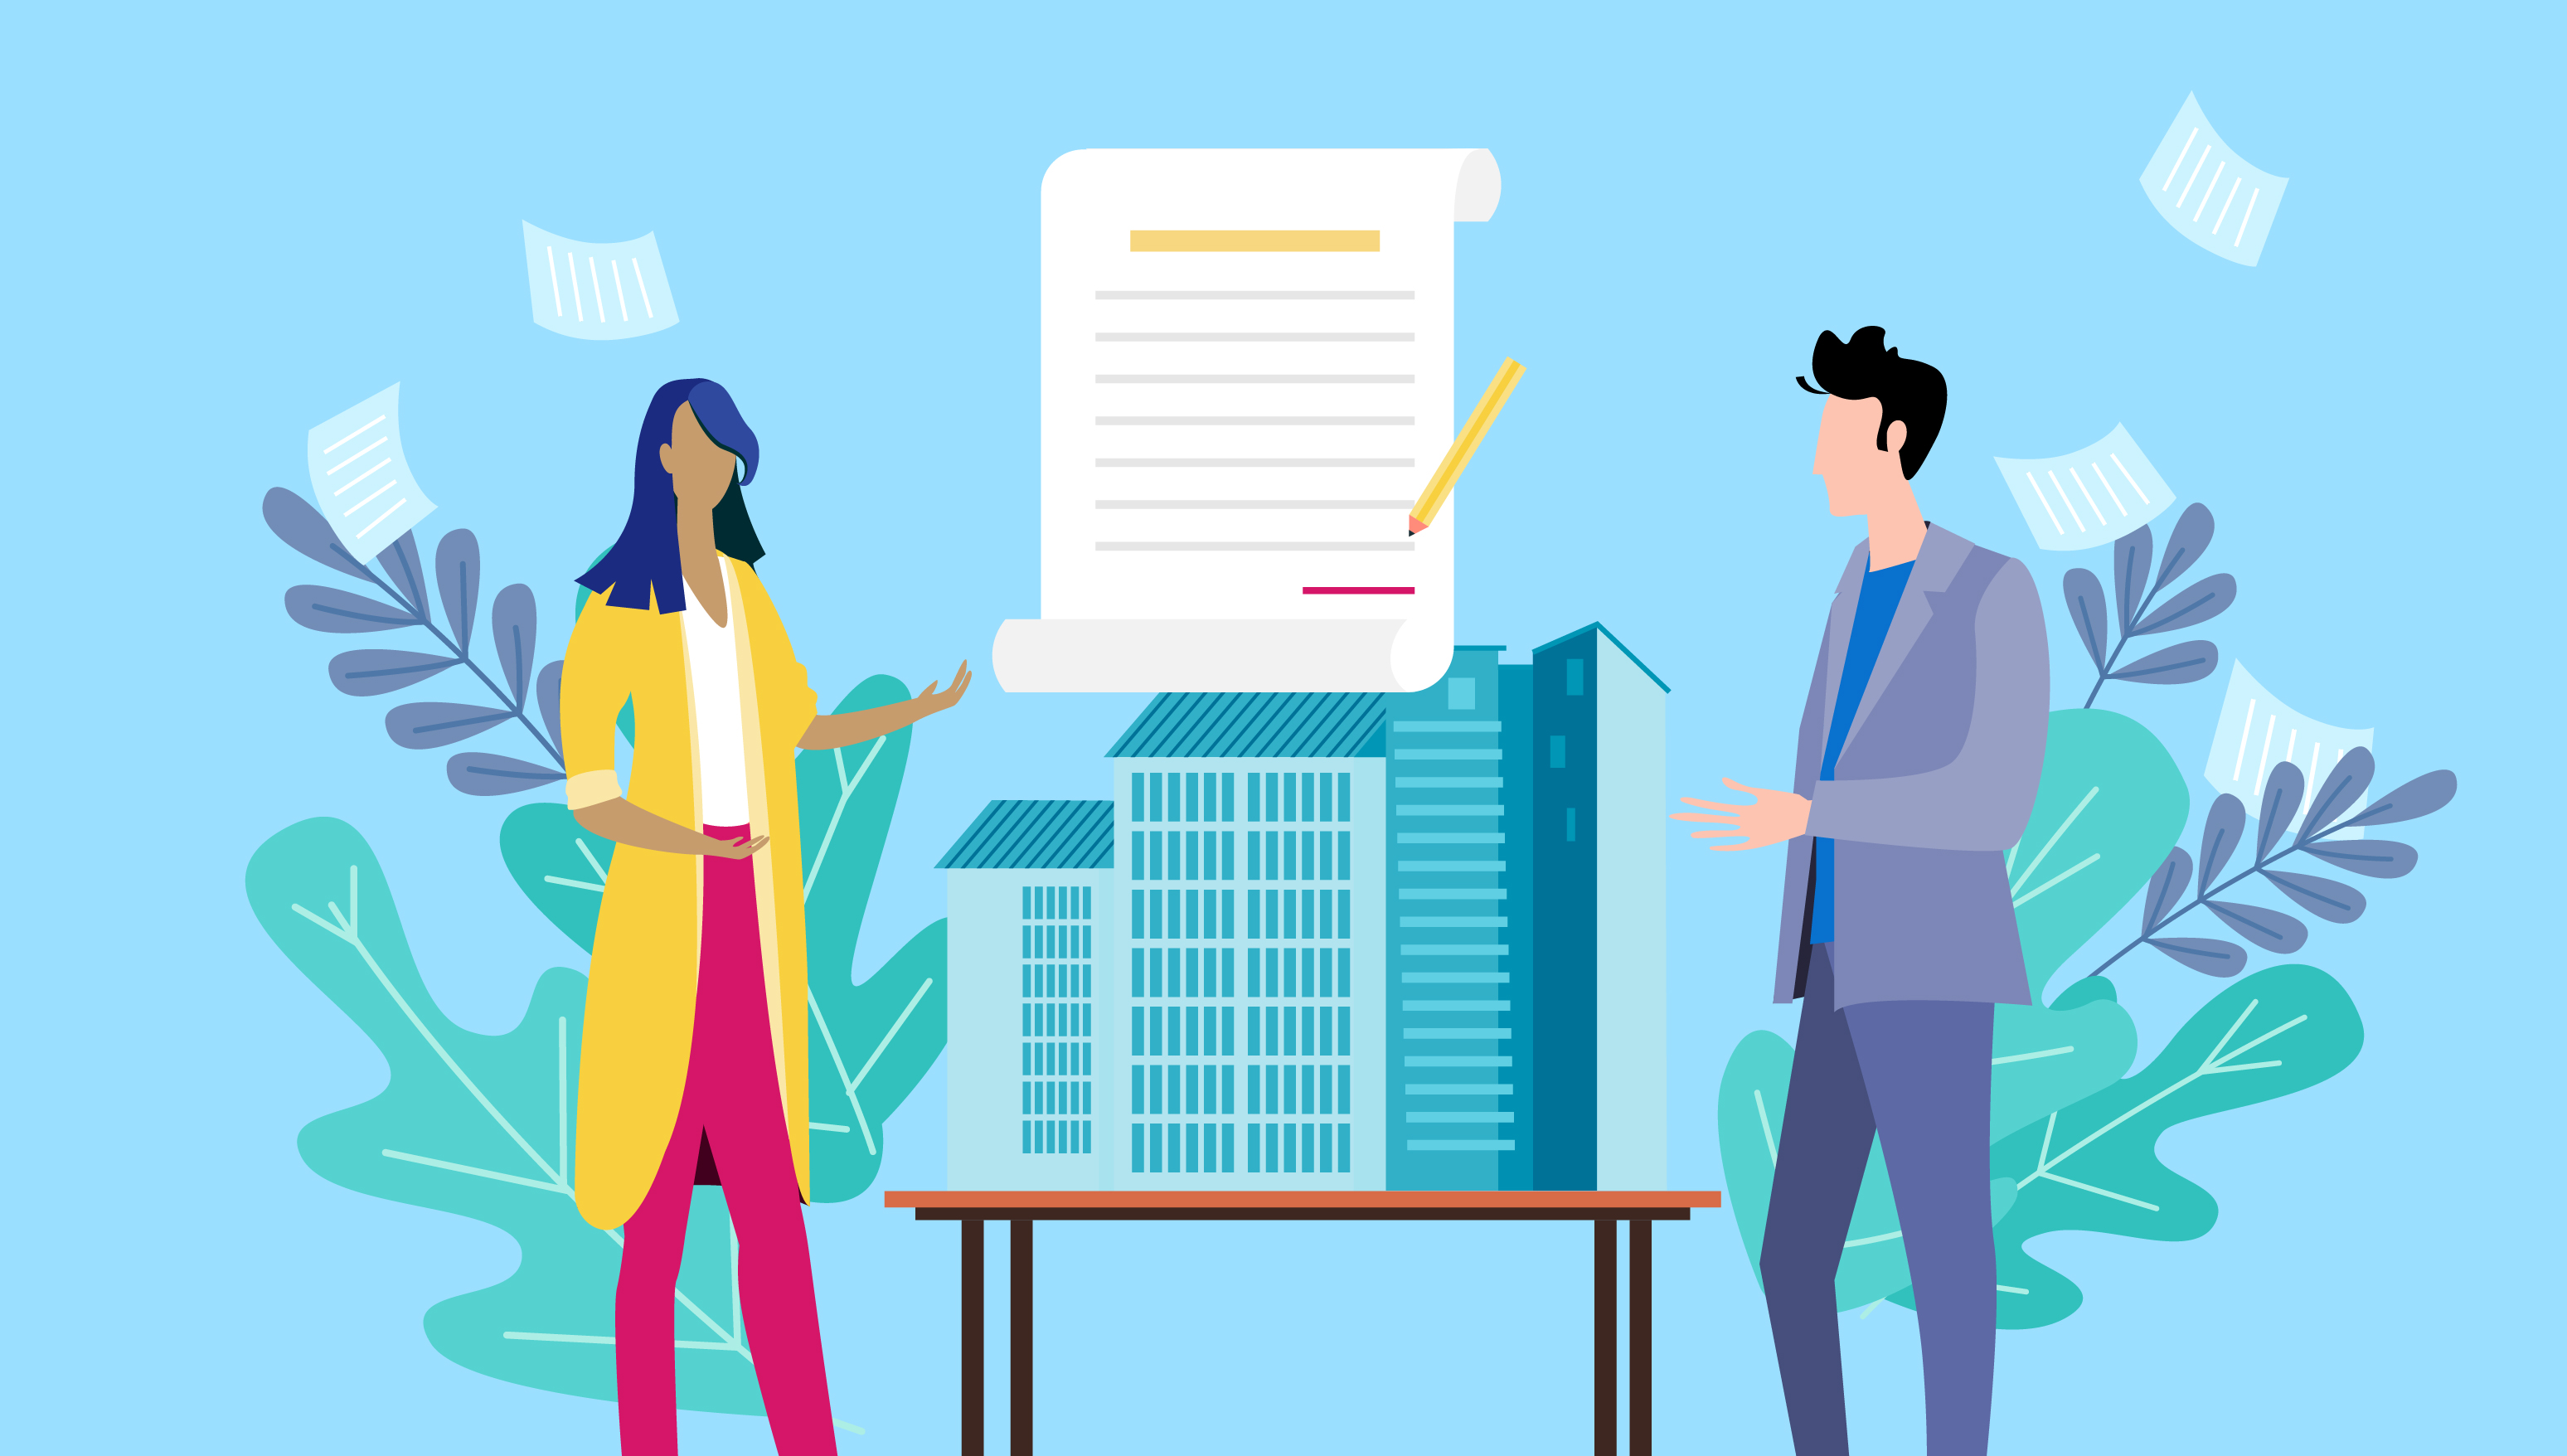 Contract Negotiation strategy is crucial during a transaction between two parties in a real estate procurement process.